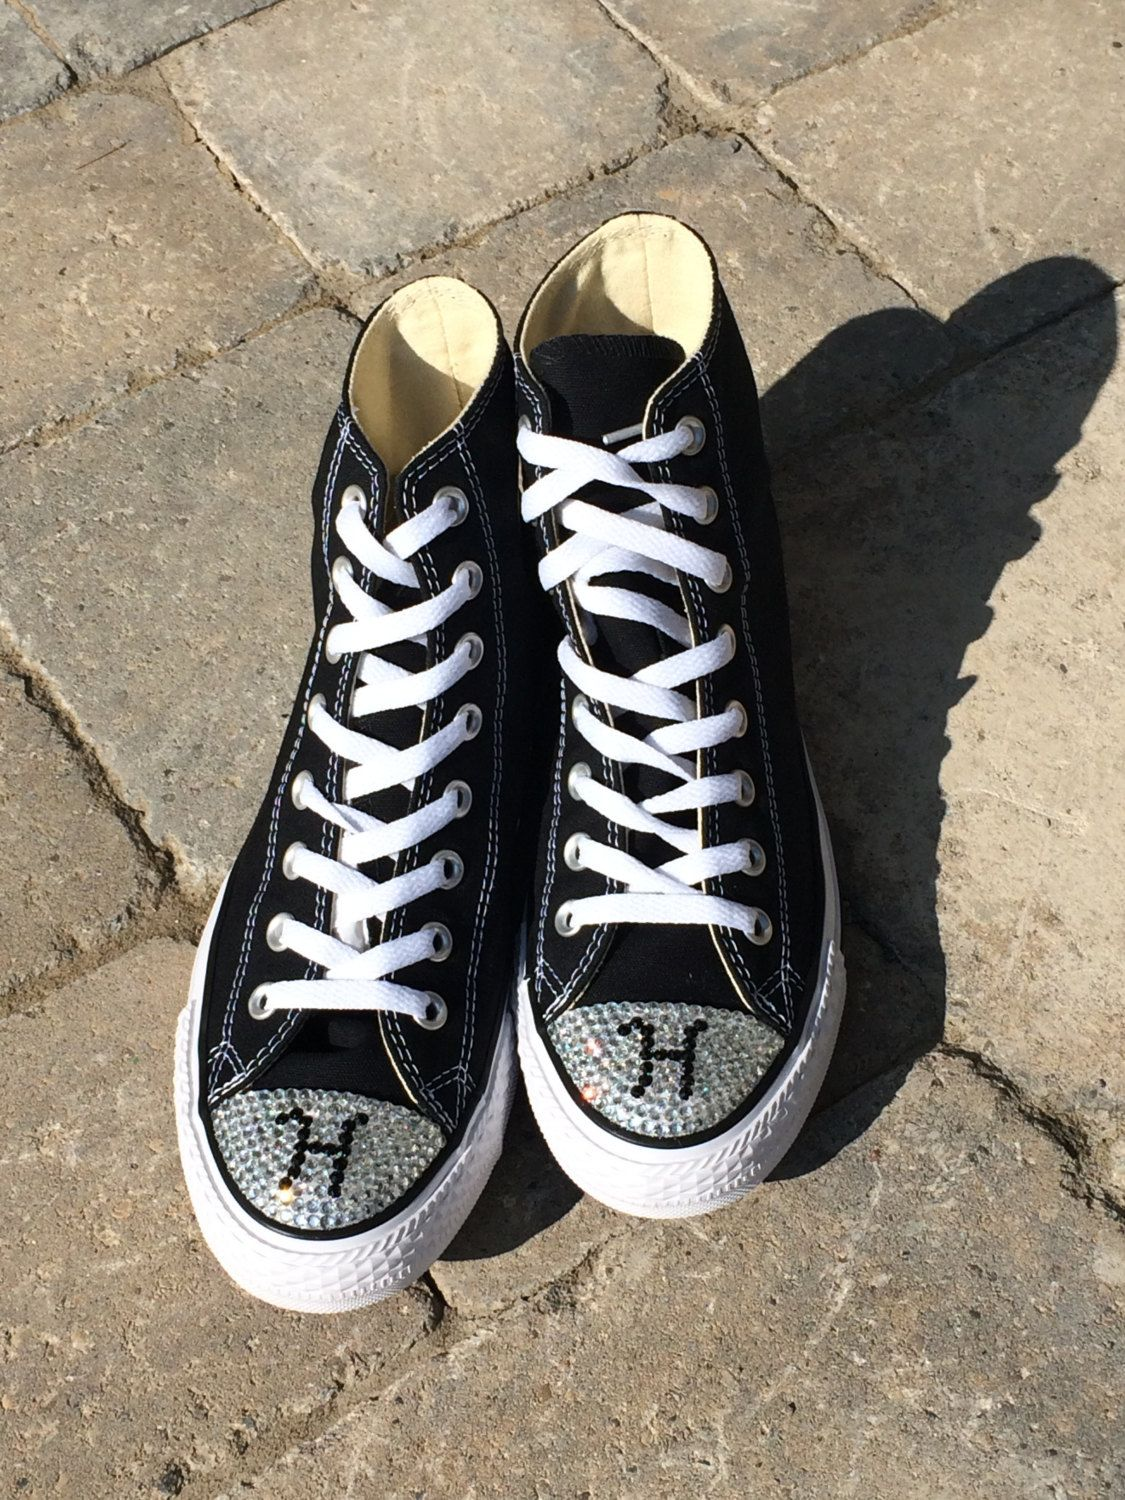 High Top Converse Monogram Shoes. Initial Rhinestone Bling. Women s Custom… 7e6f08f78